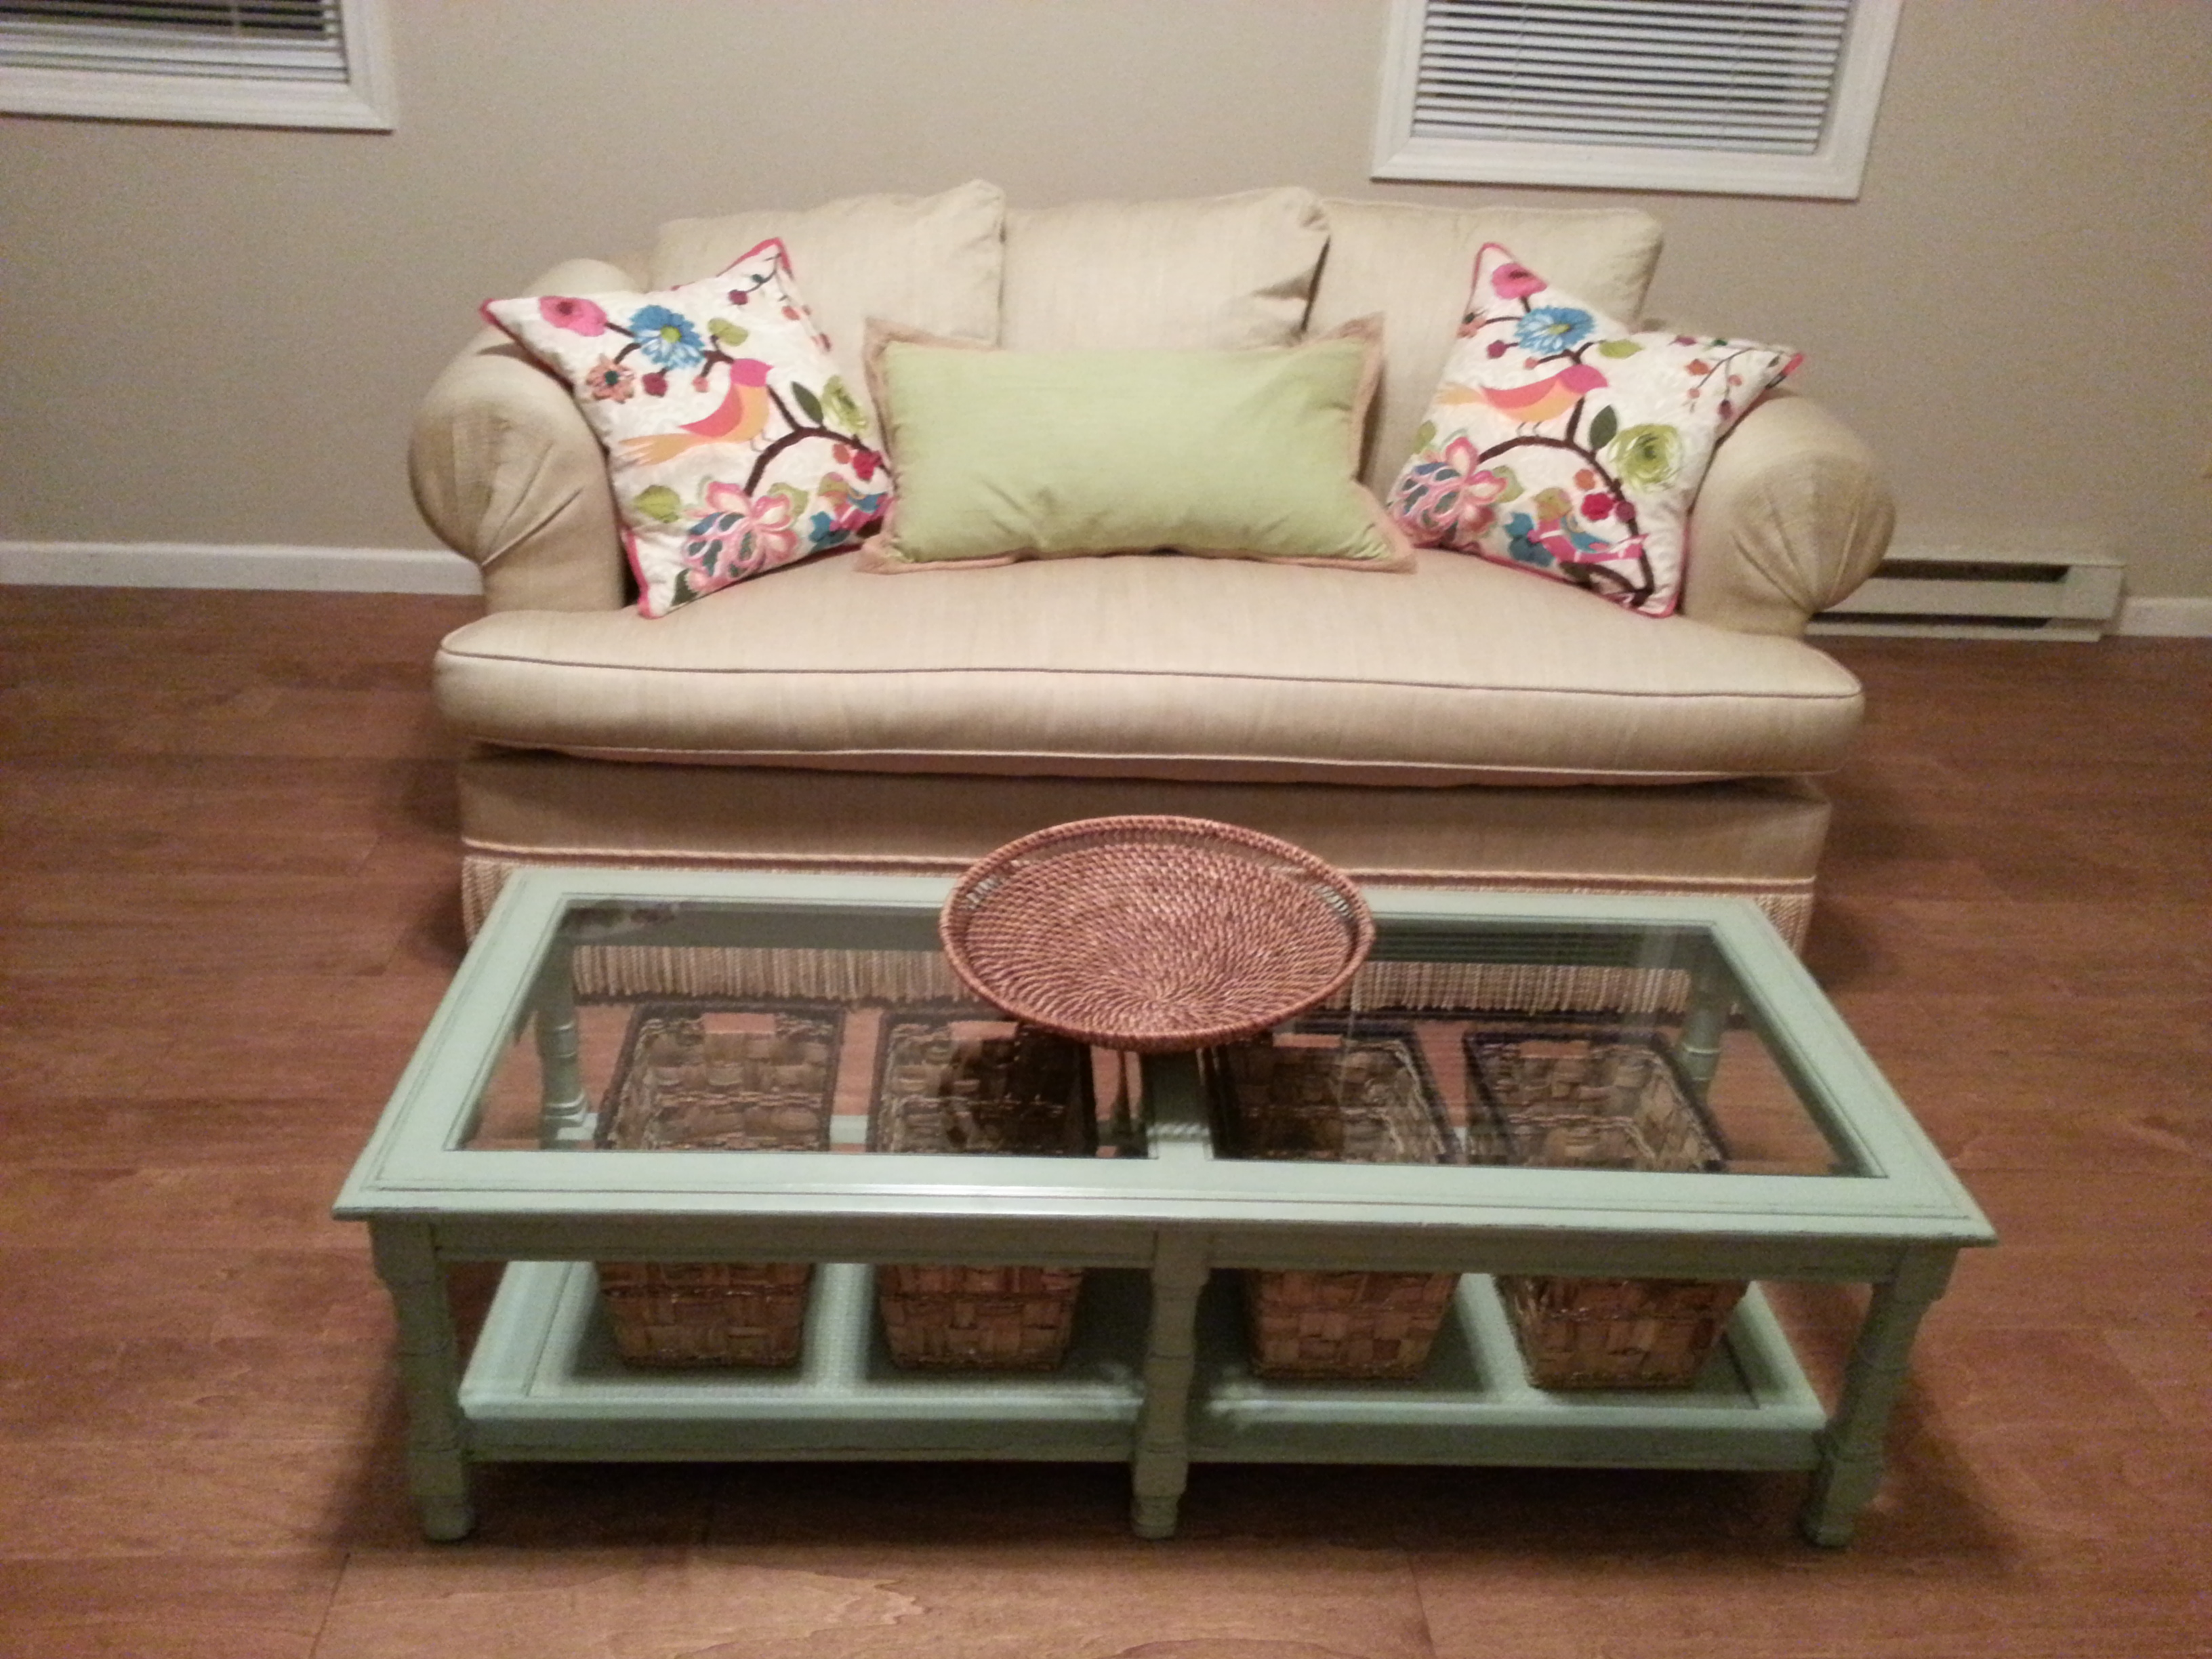 How to Update an Old Coffee Table – From Old to New – Homemade